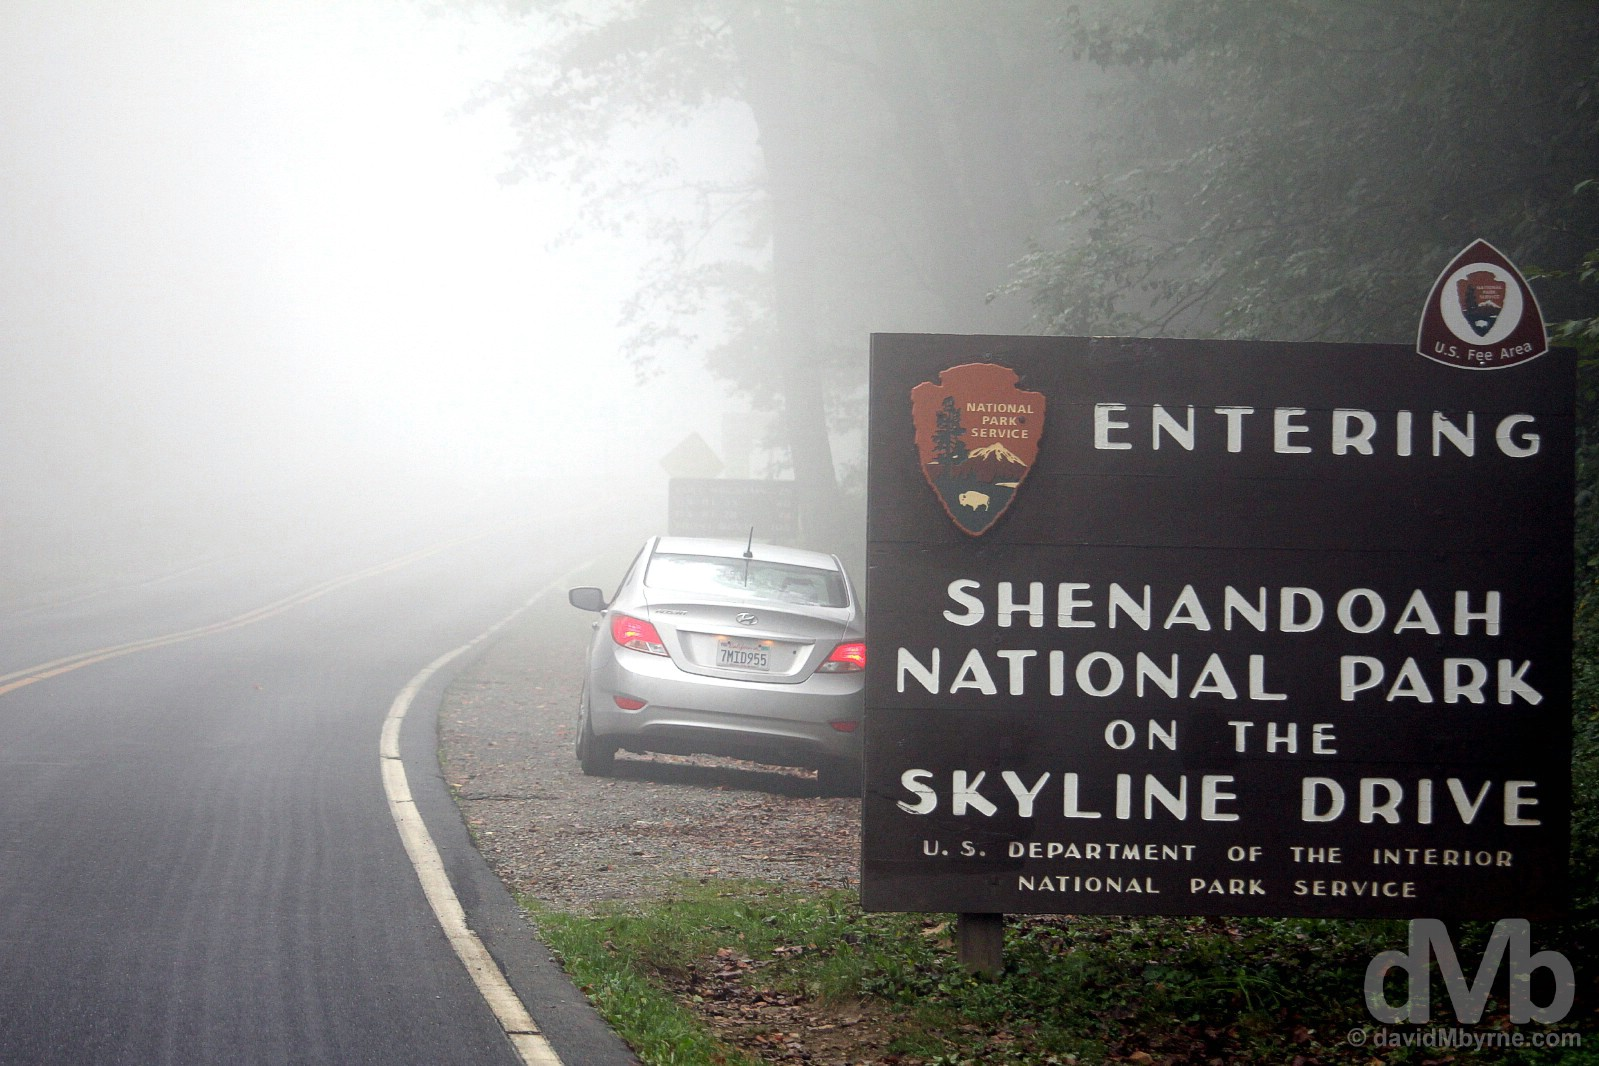 At the southern entrance to Shenandoah National Park in Virginia, USA. September 25, 2016.